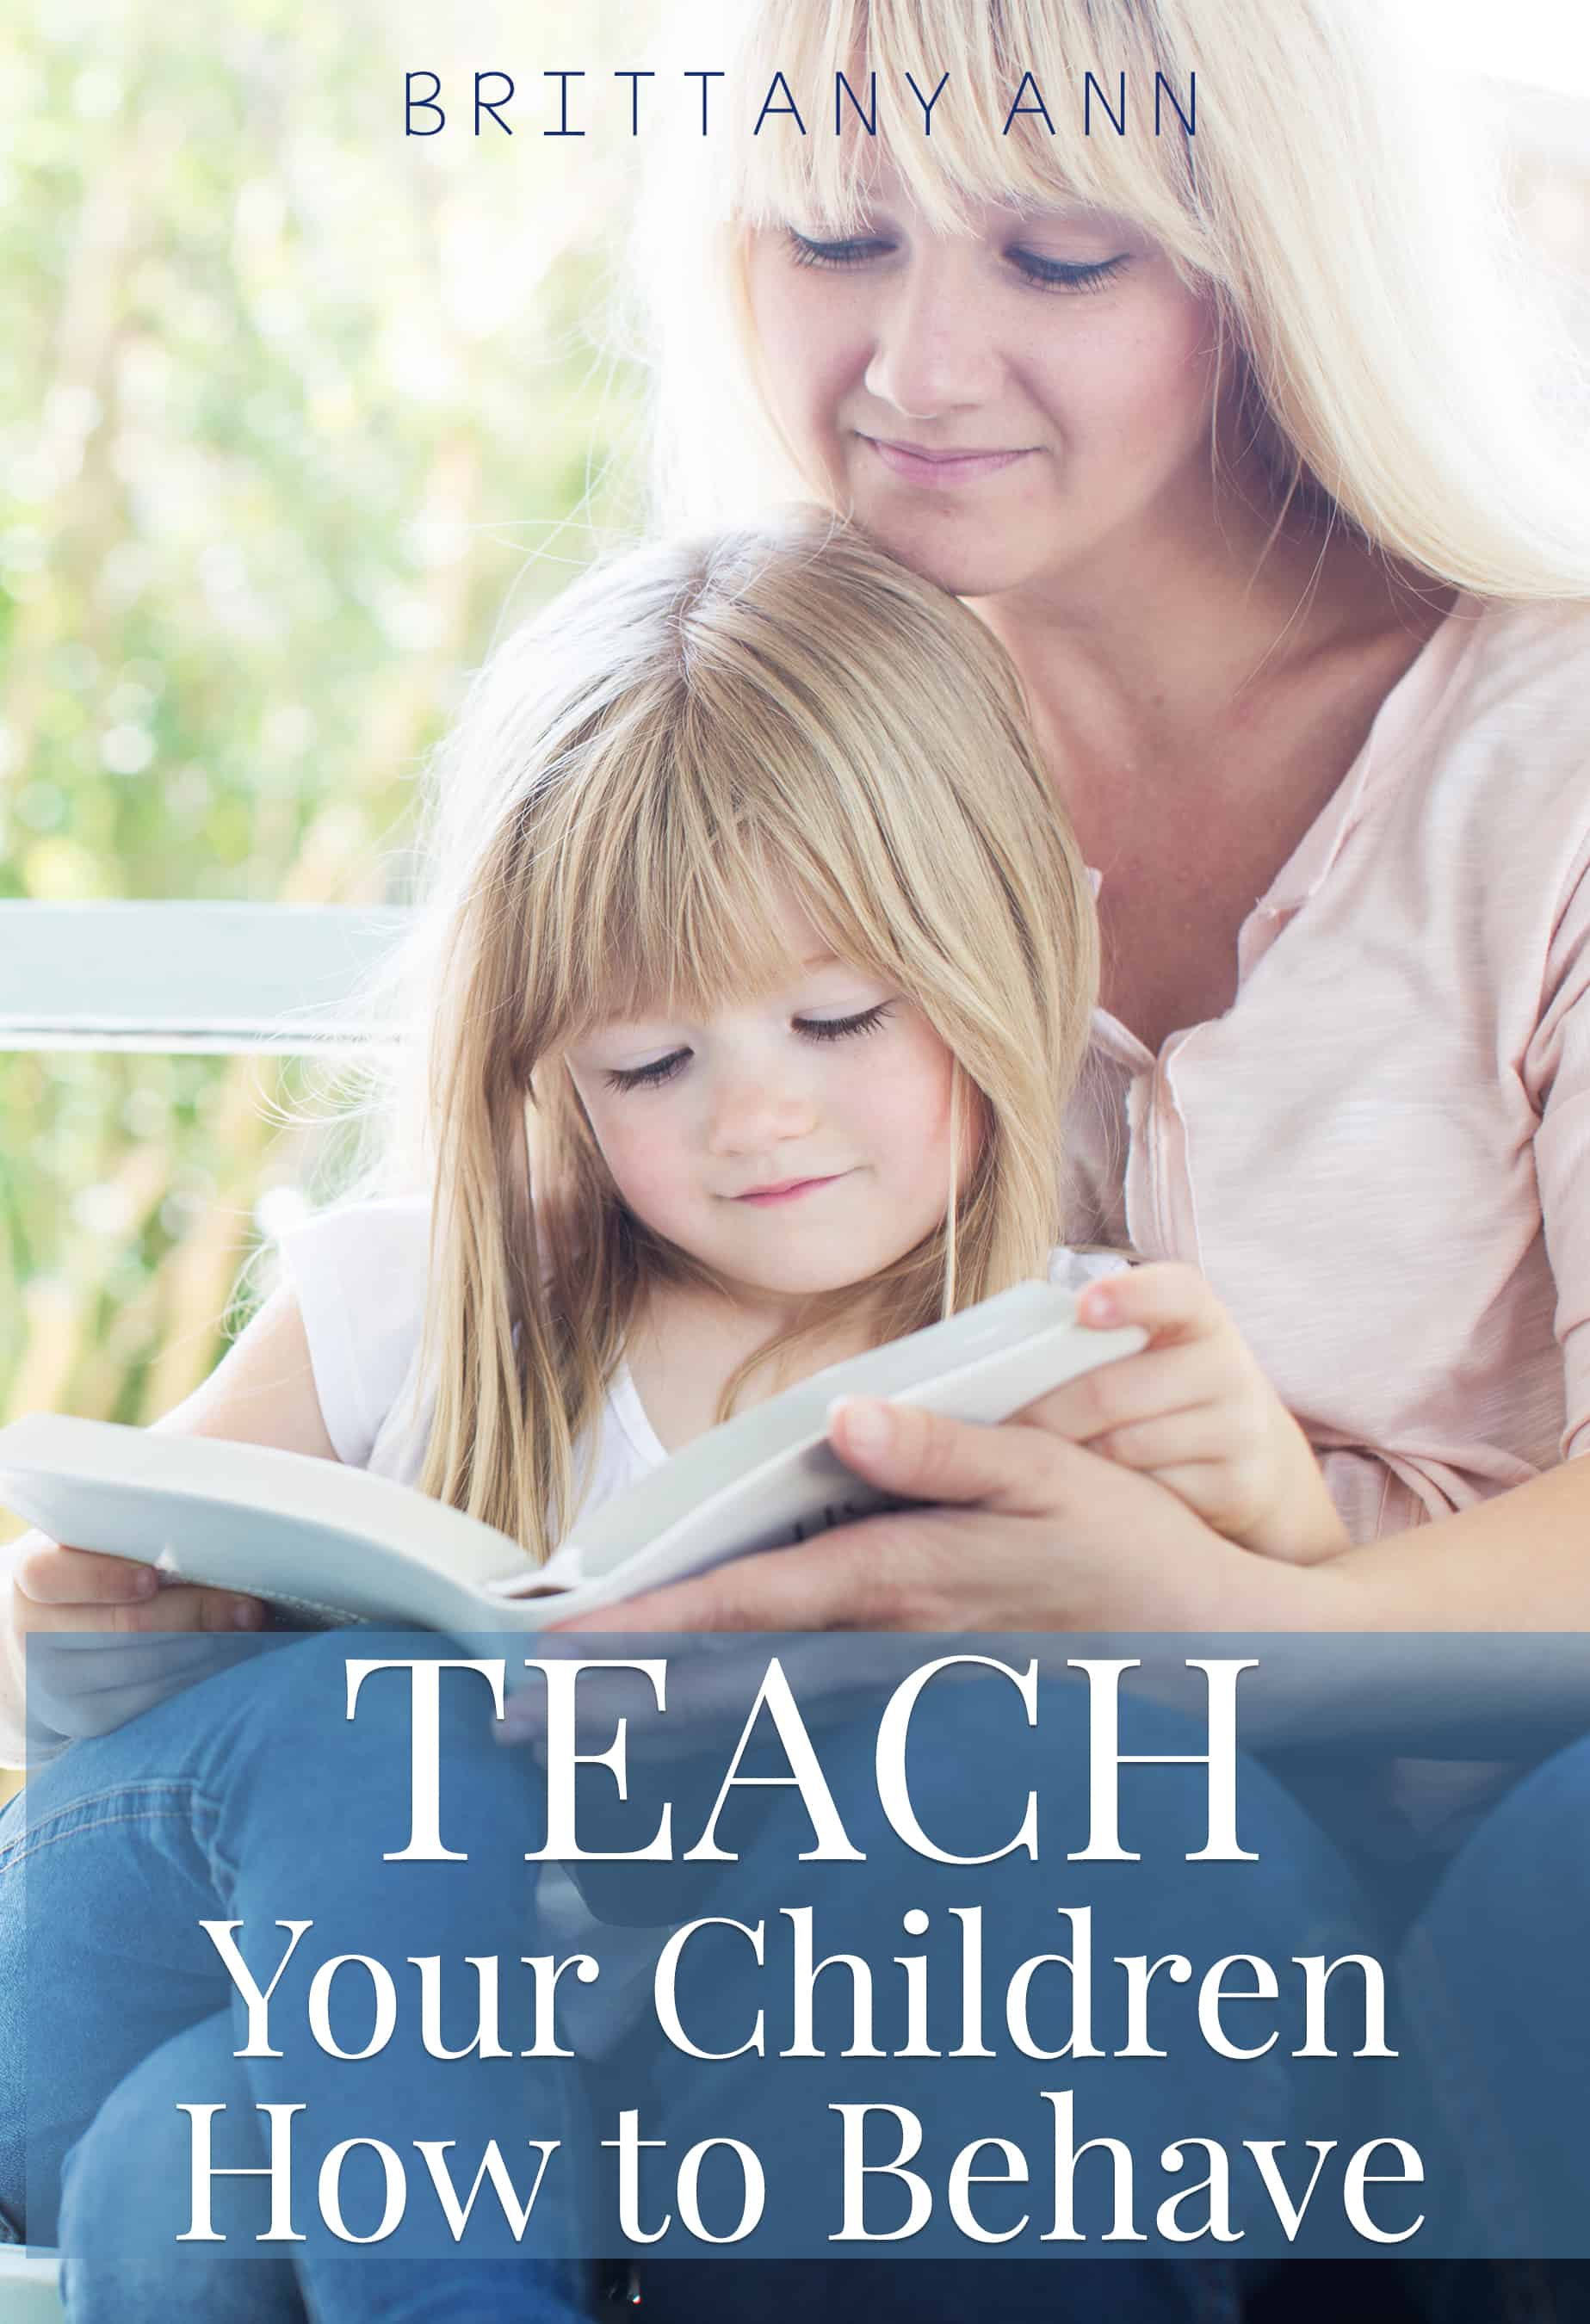 You CAN teach your children how to behave and this practical book can help! Learn how to navigate the rocky roads of parenting with proactive strategies to implement today!